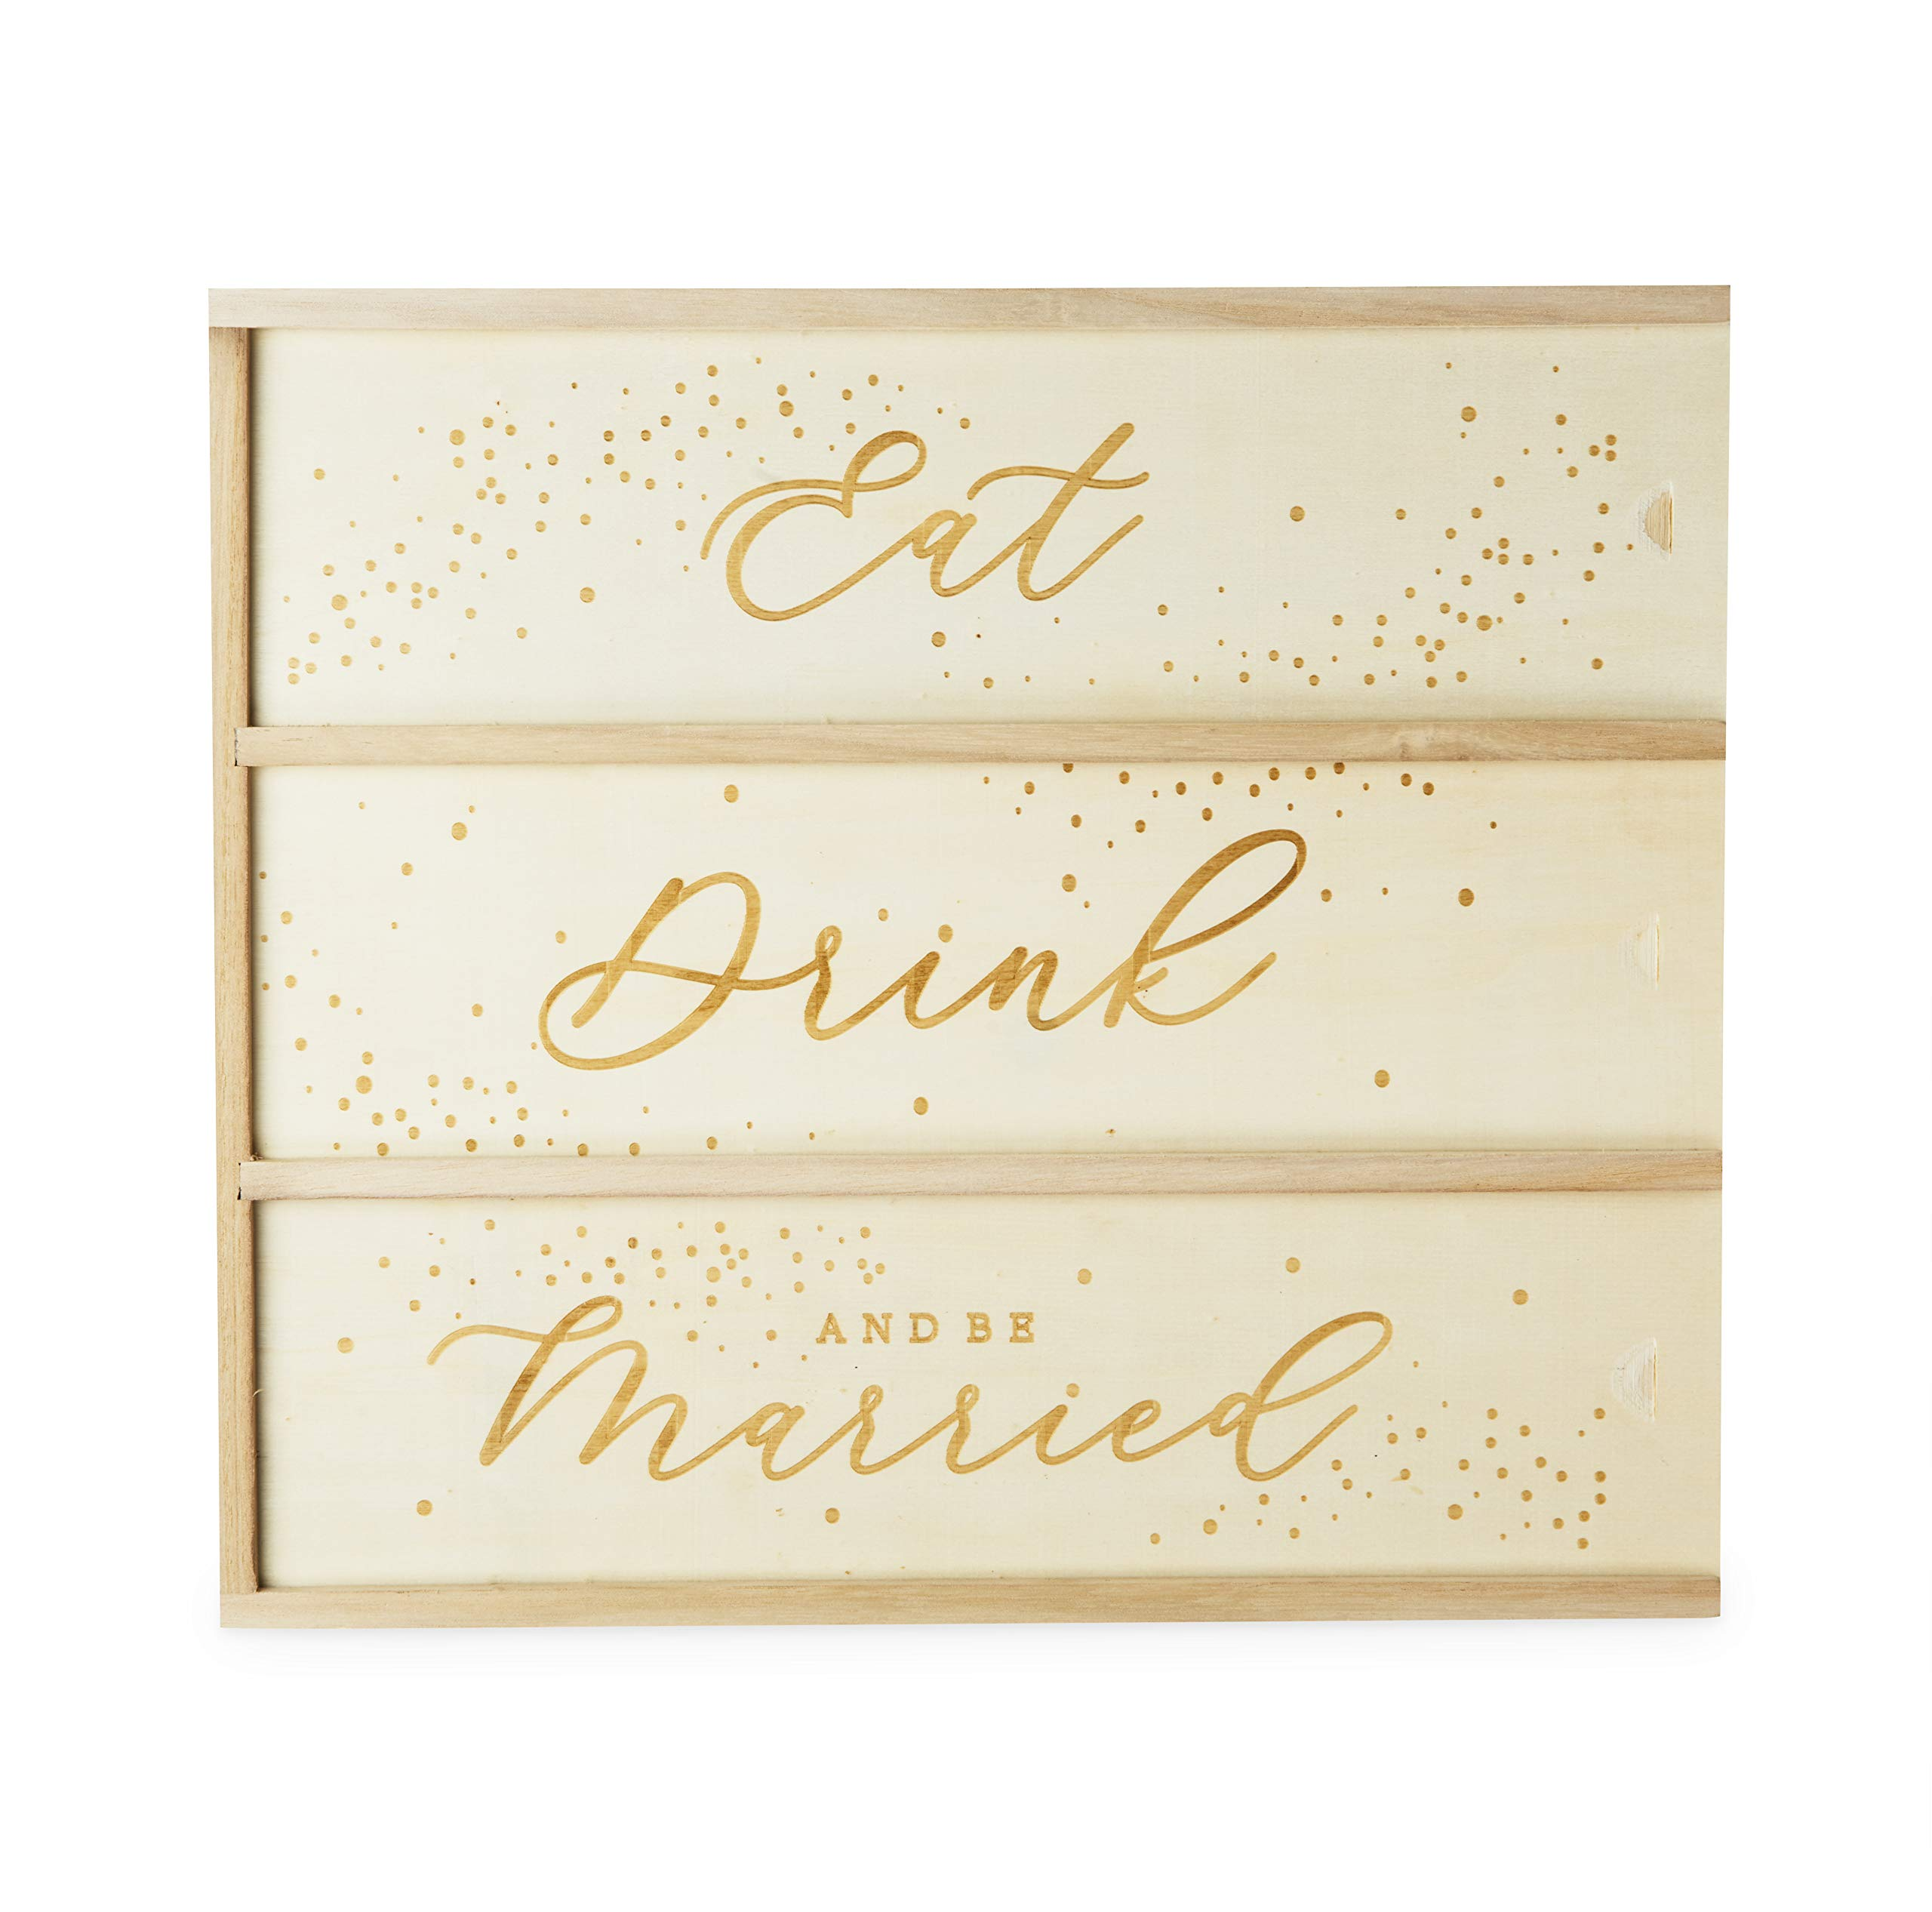 Twine 5607 Garden Party: Eat, Drink & Be Married 3 Bottle Wine Box, One Size, by Twine (Image #1)